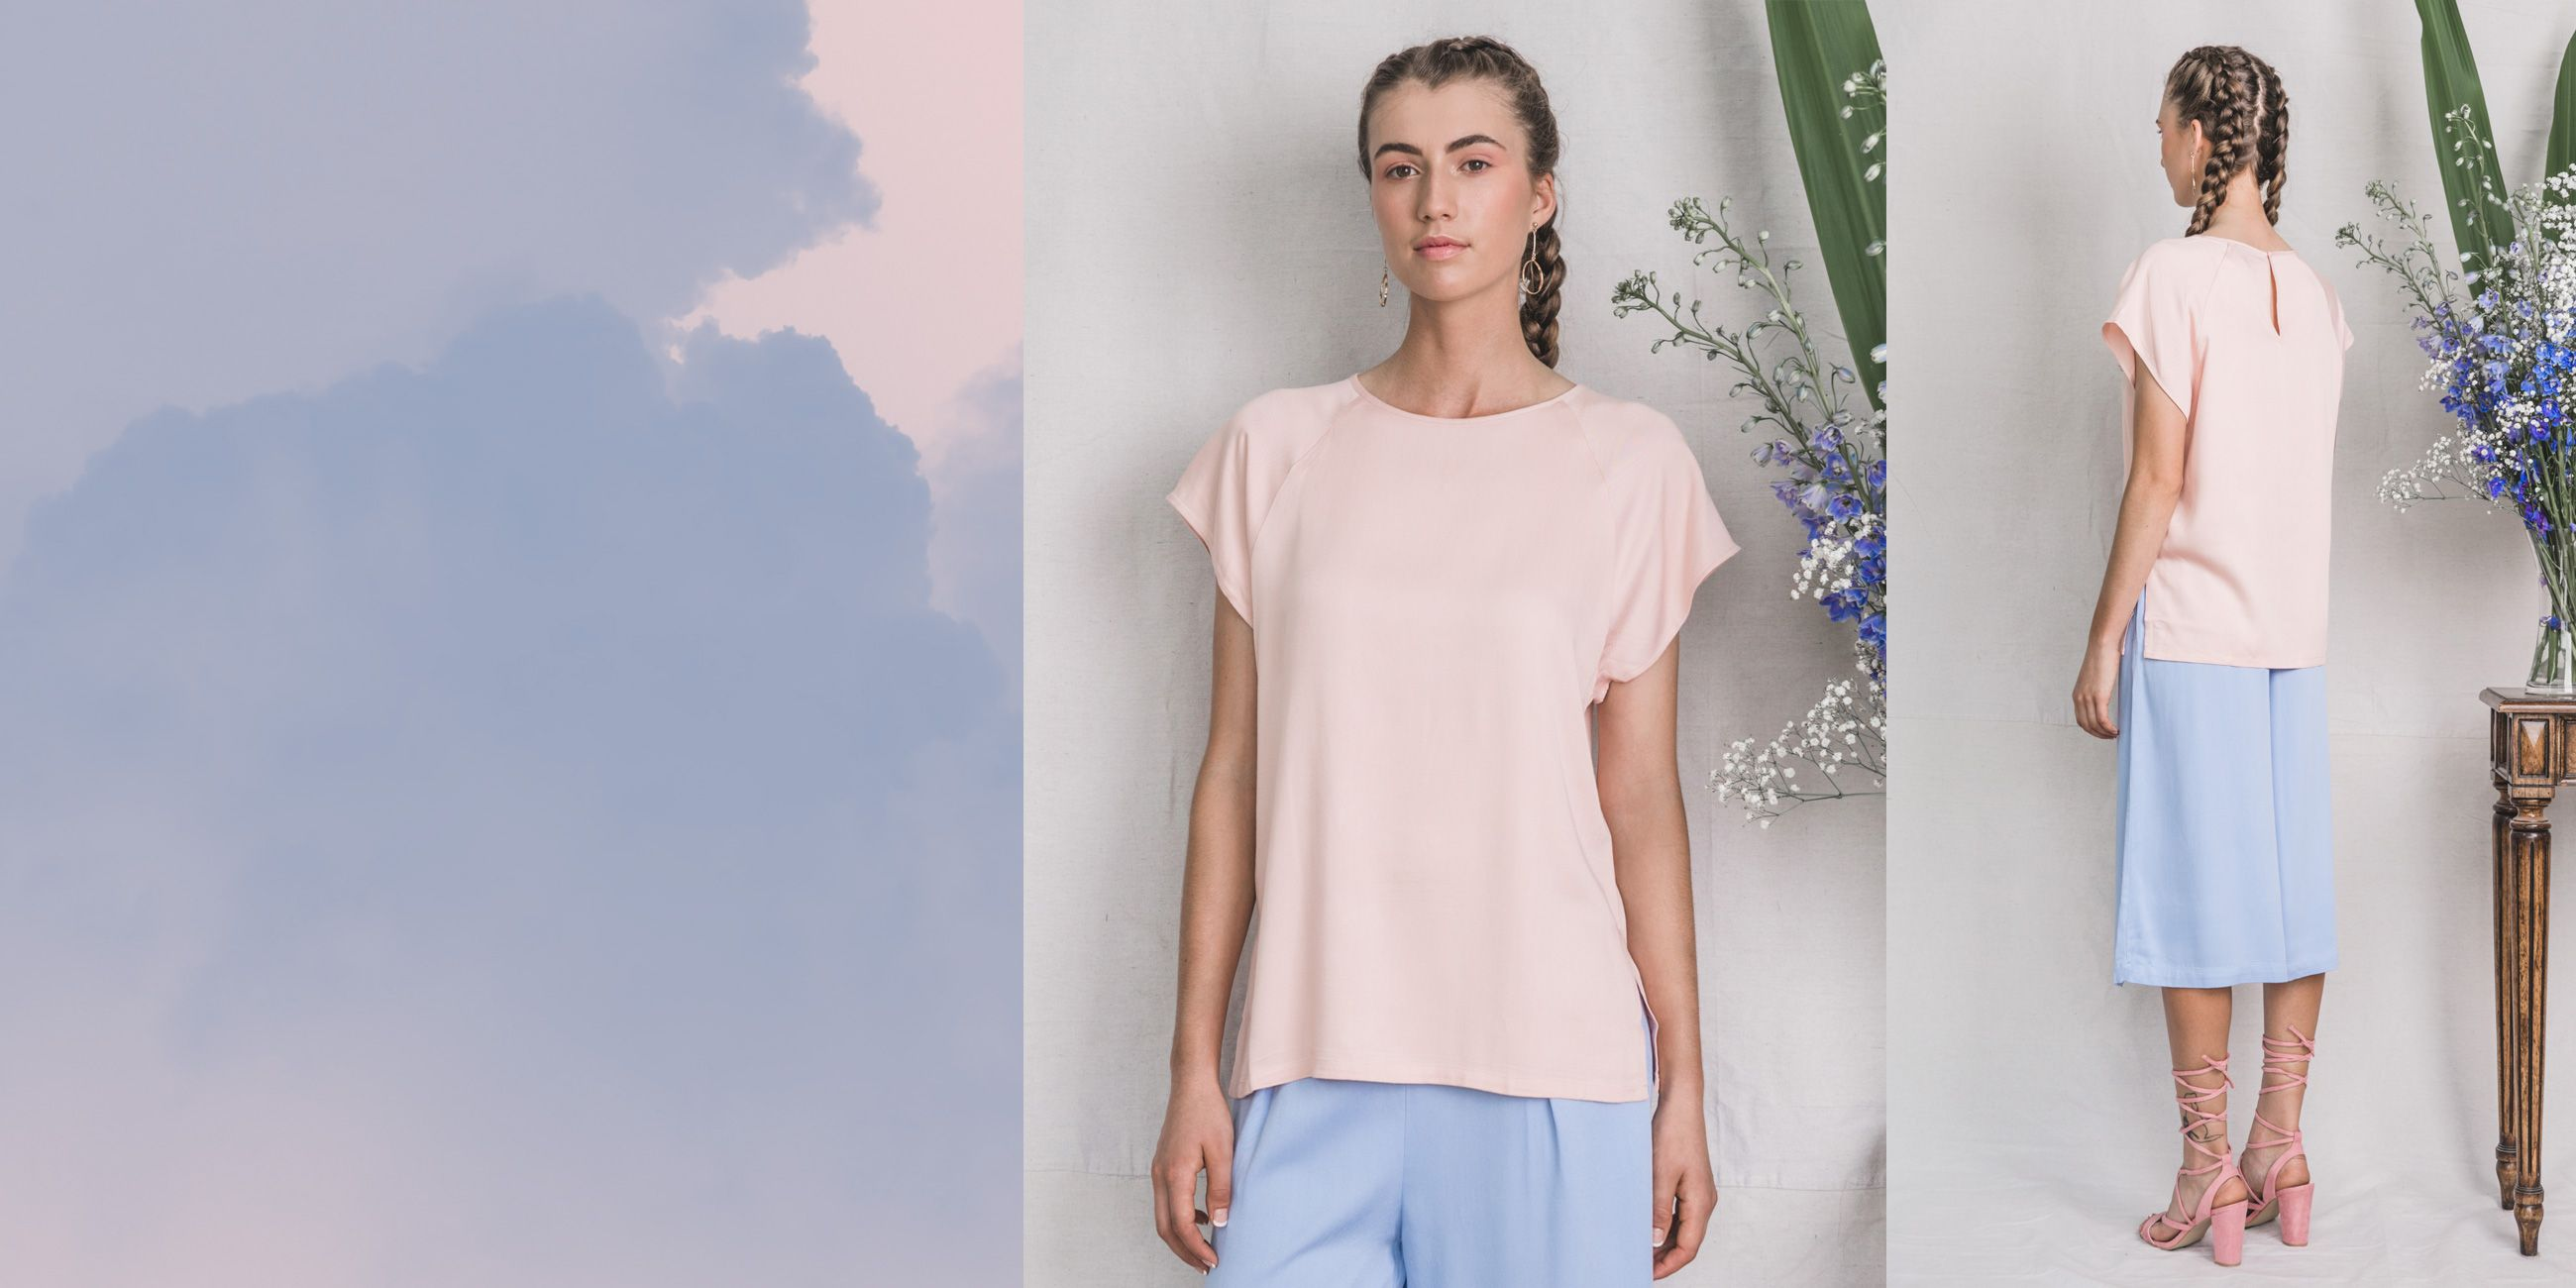 Altair Bamboo Top in Rose Quartz – The Great Beyond 1